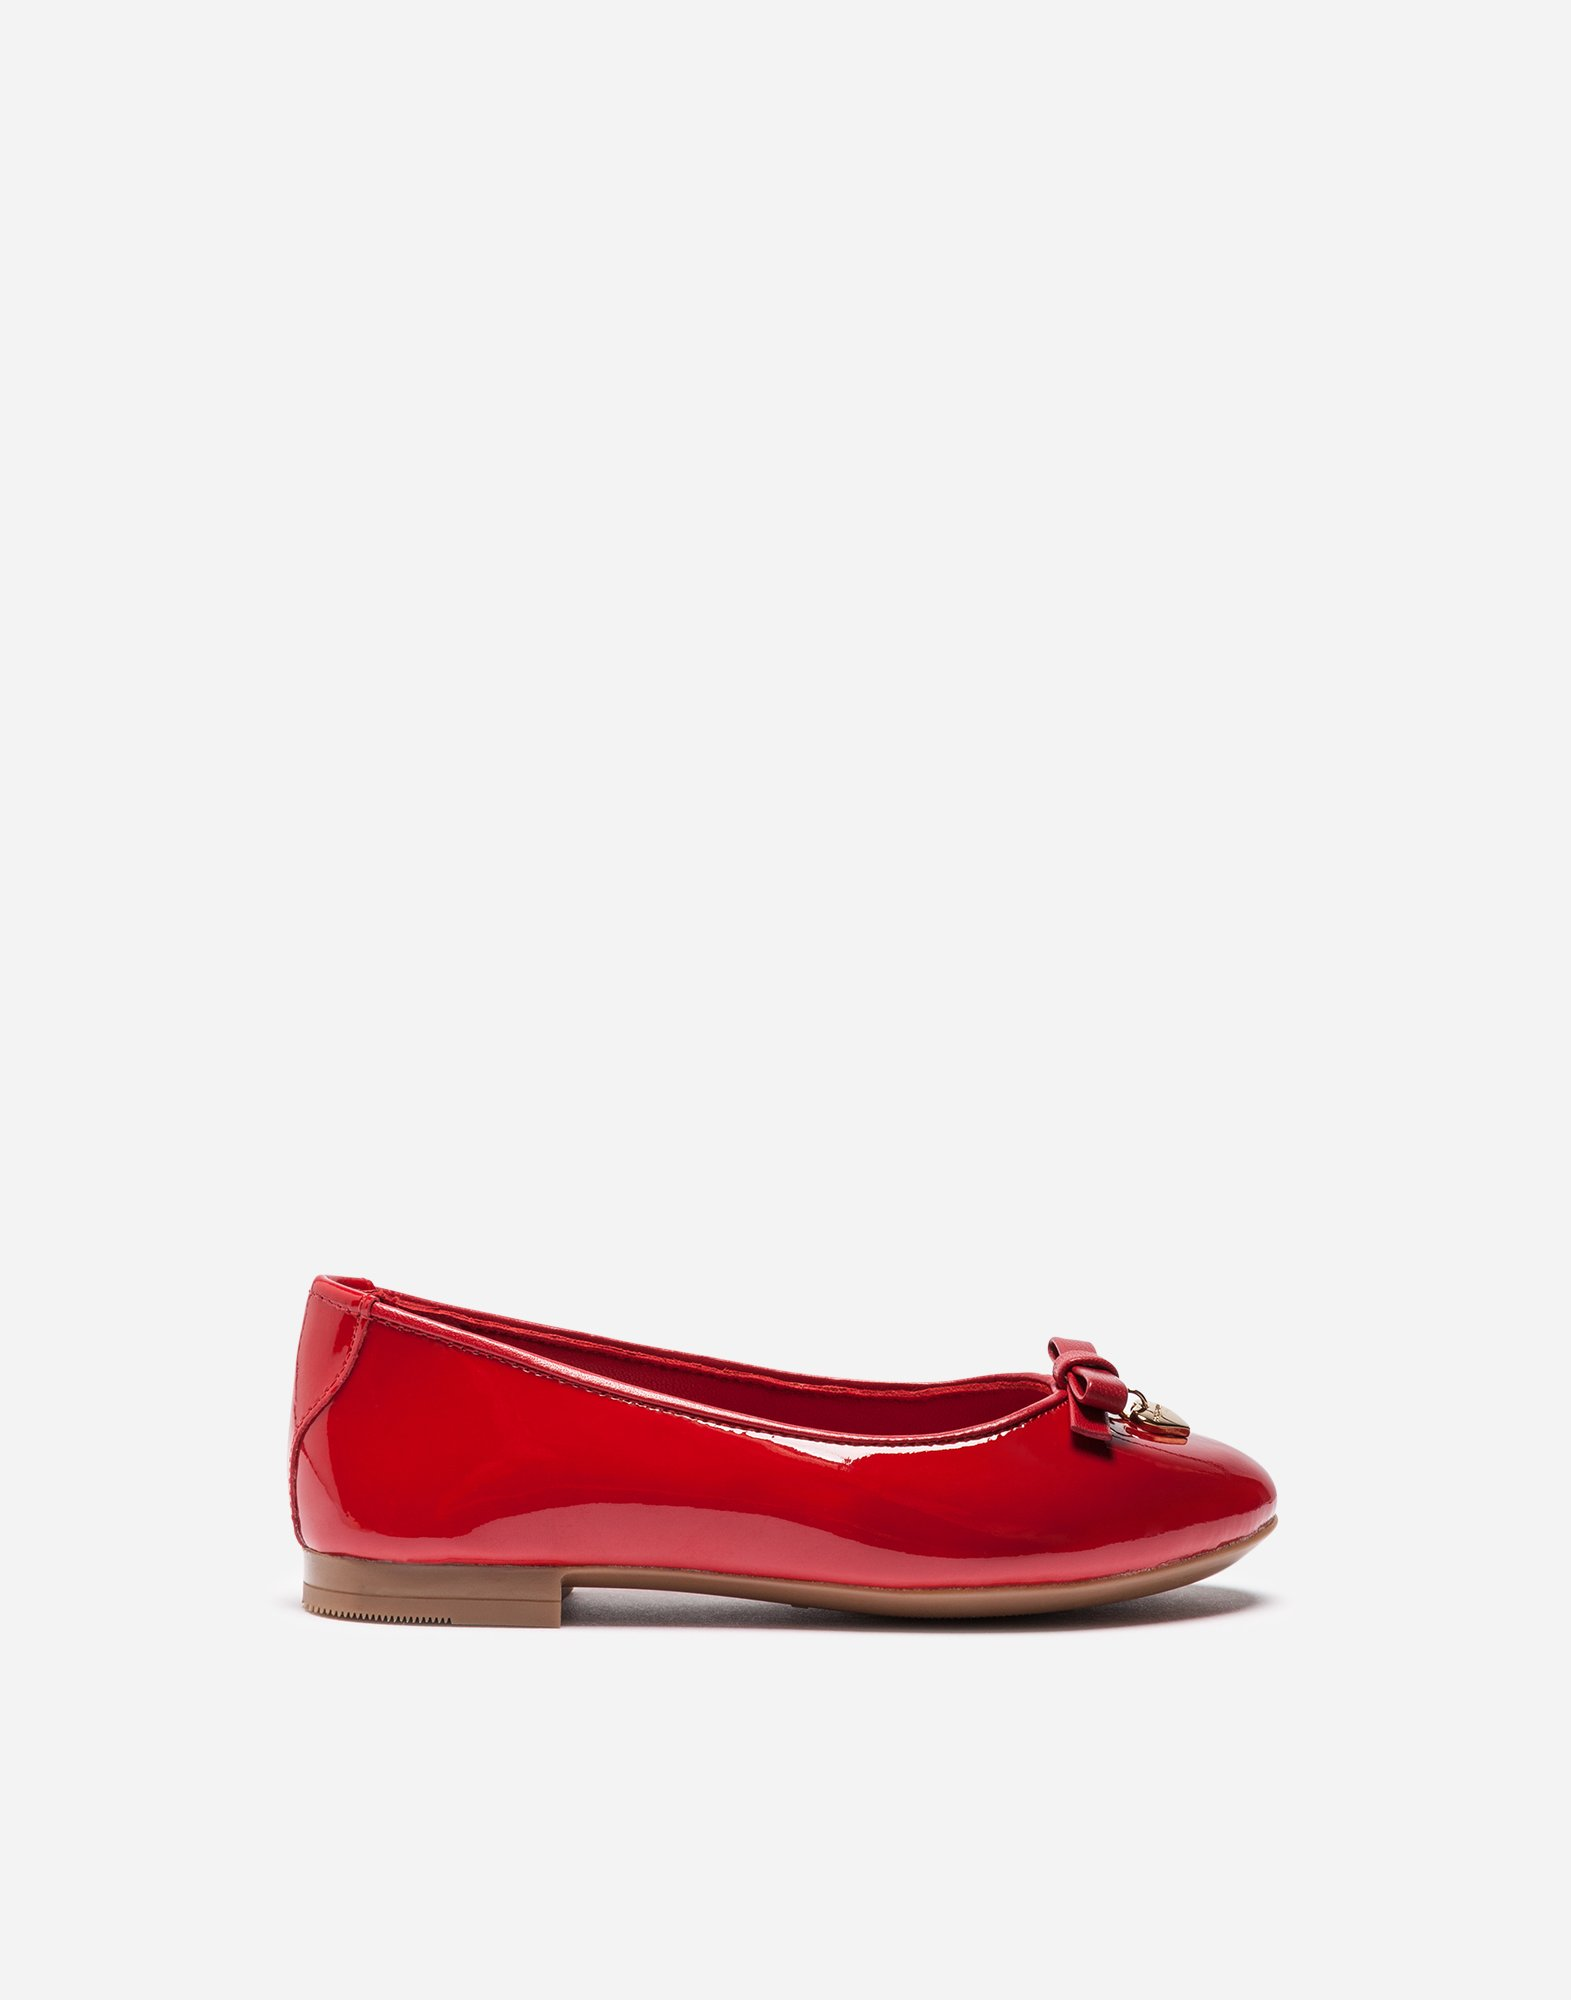 PATENT LEATHER BALLERINA SHOE WITH BOW